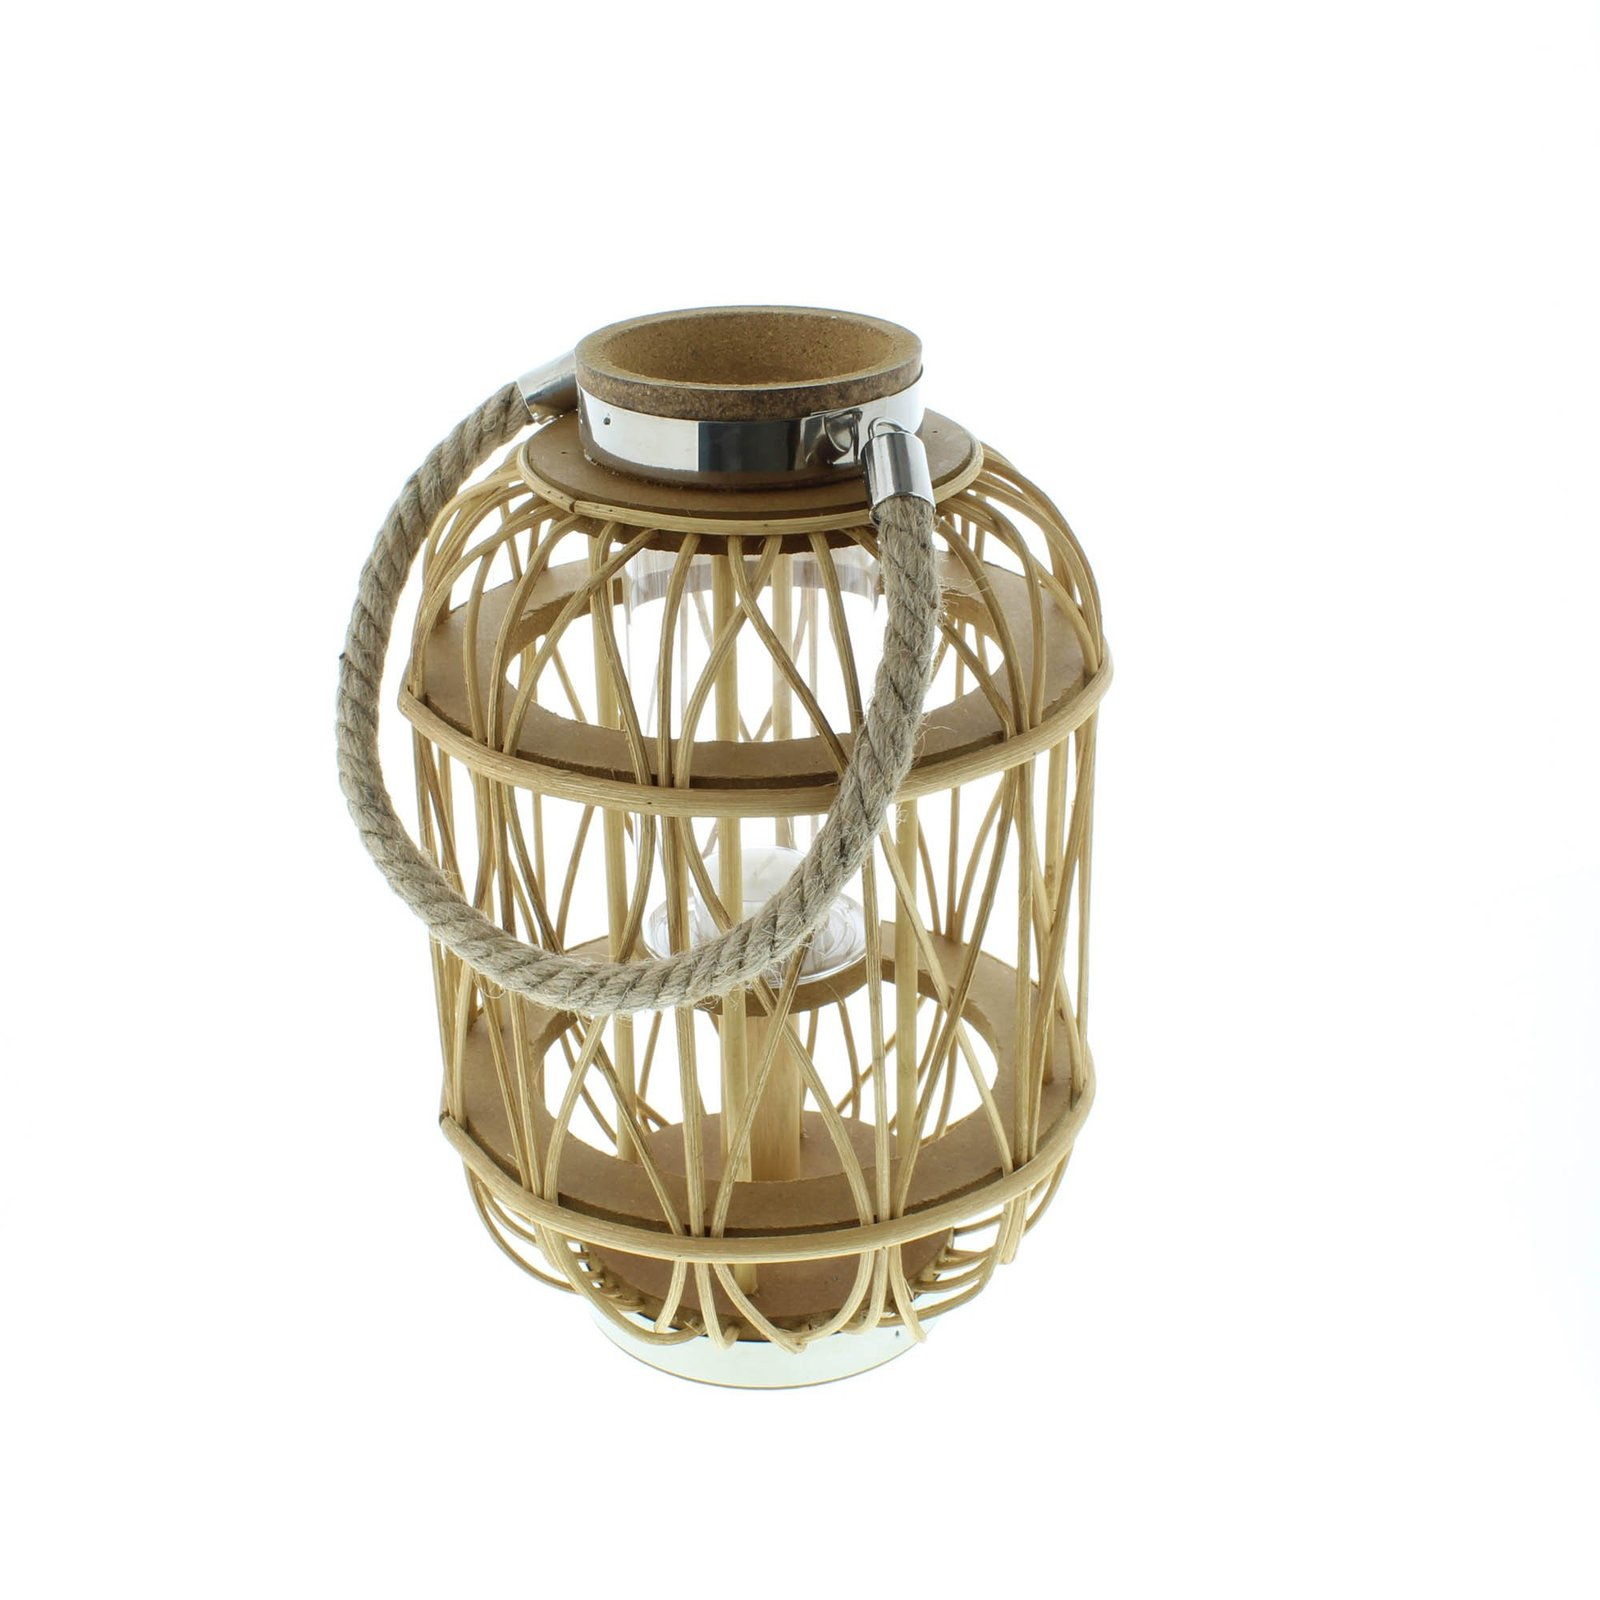 Lantern Candle Holders, Patio Outdoor Woven Rattan Rustic Wooden Candle Lantern